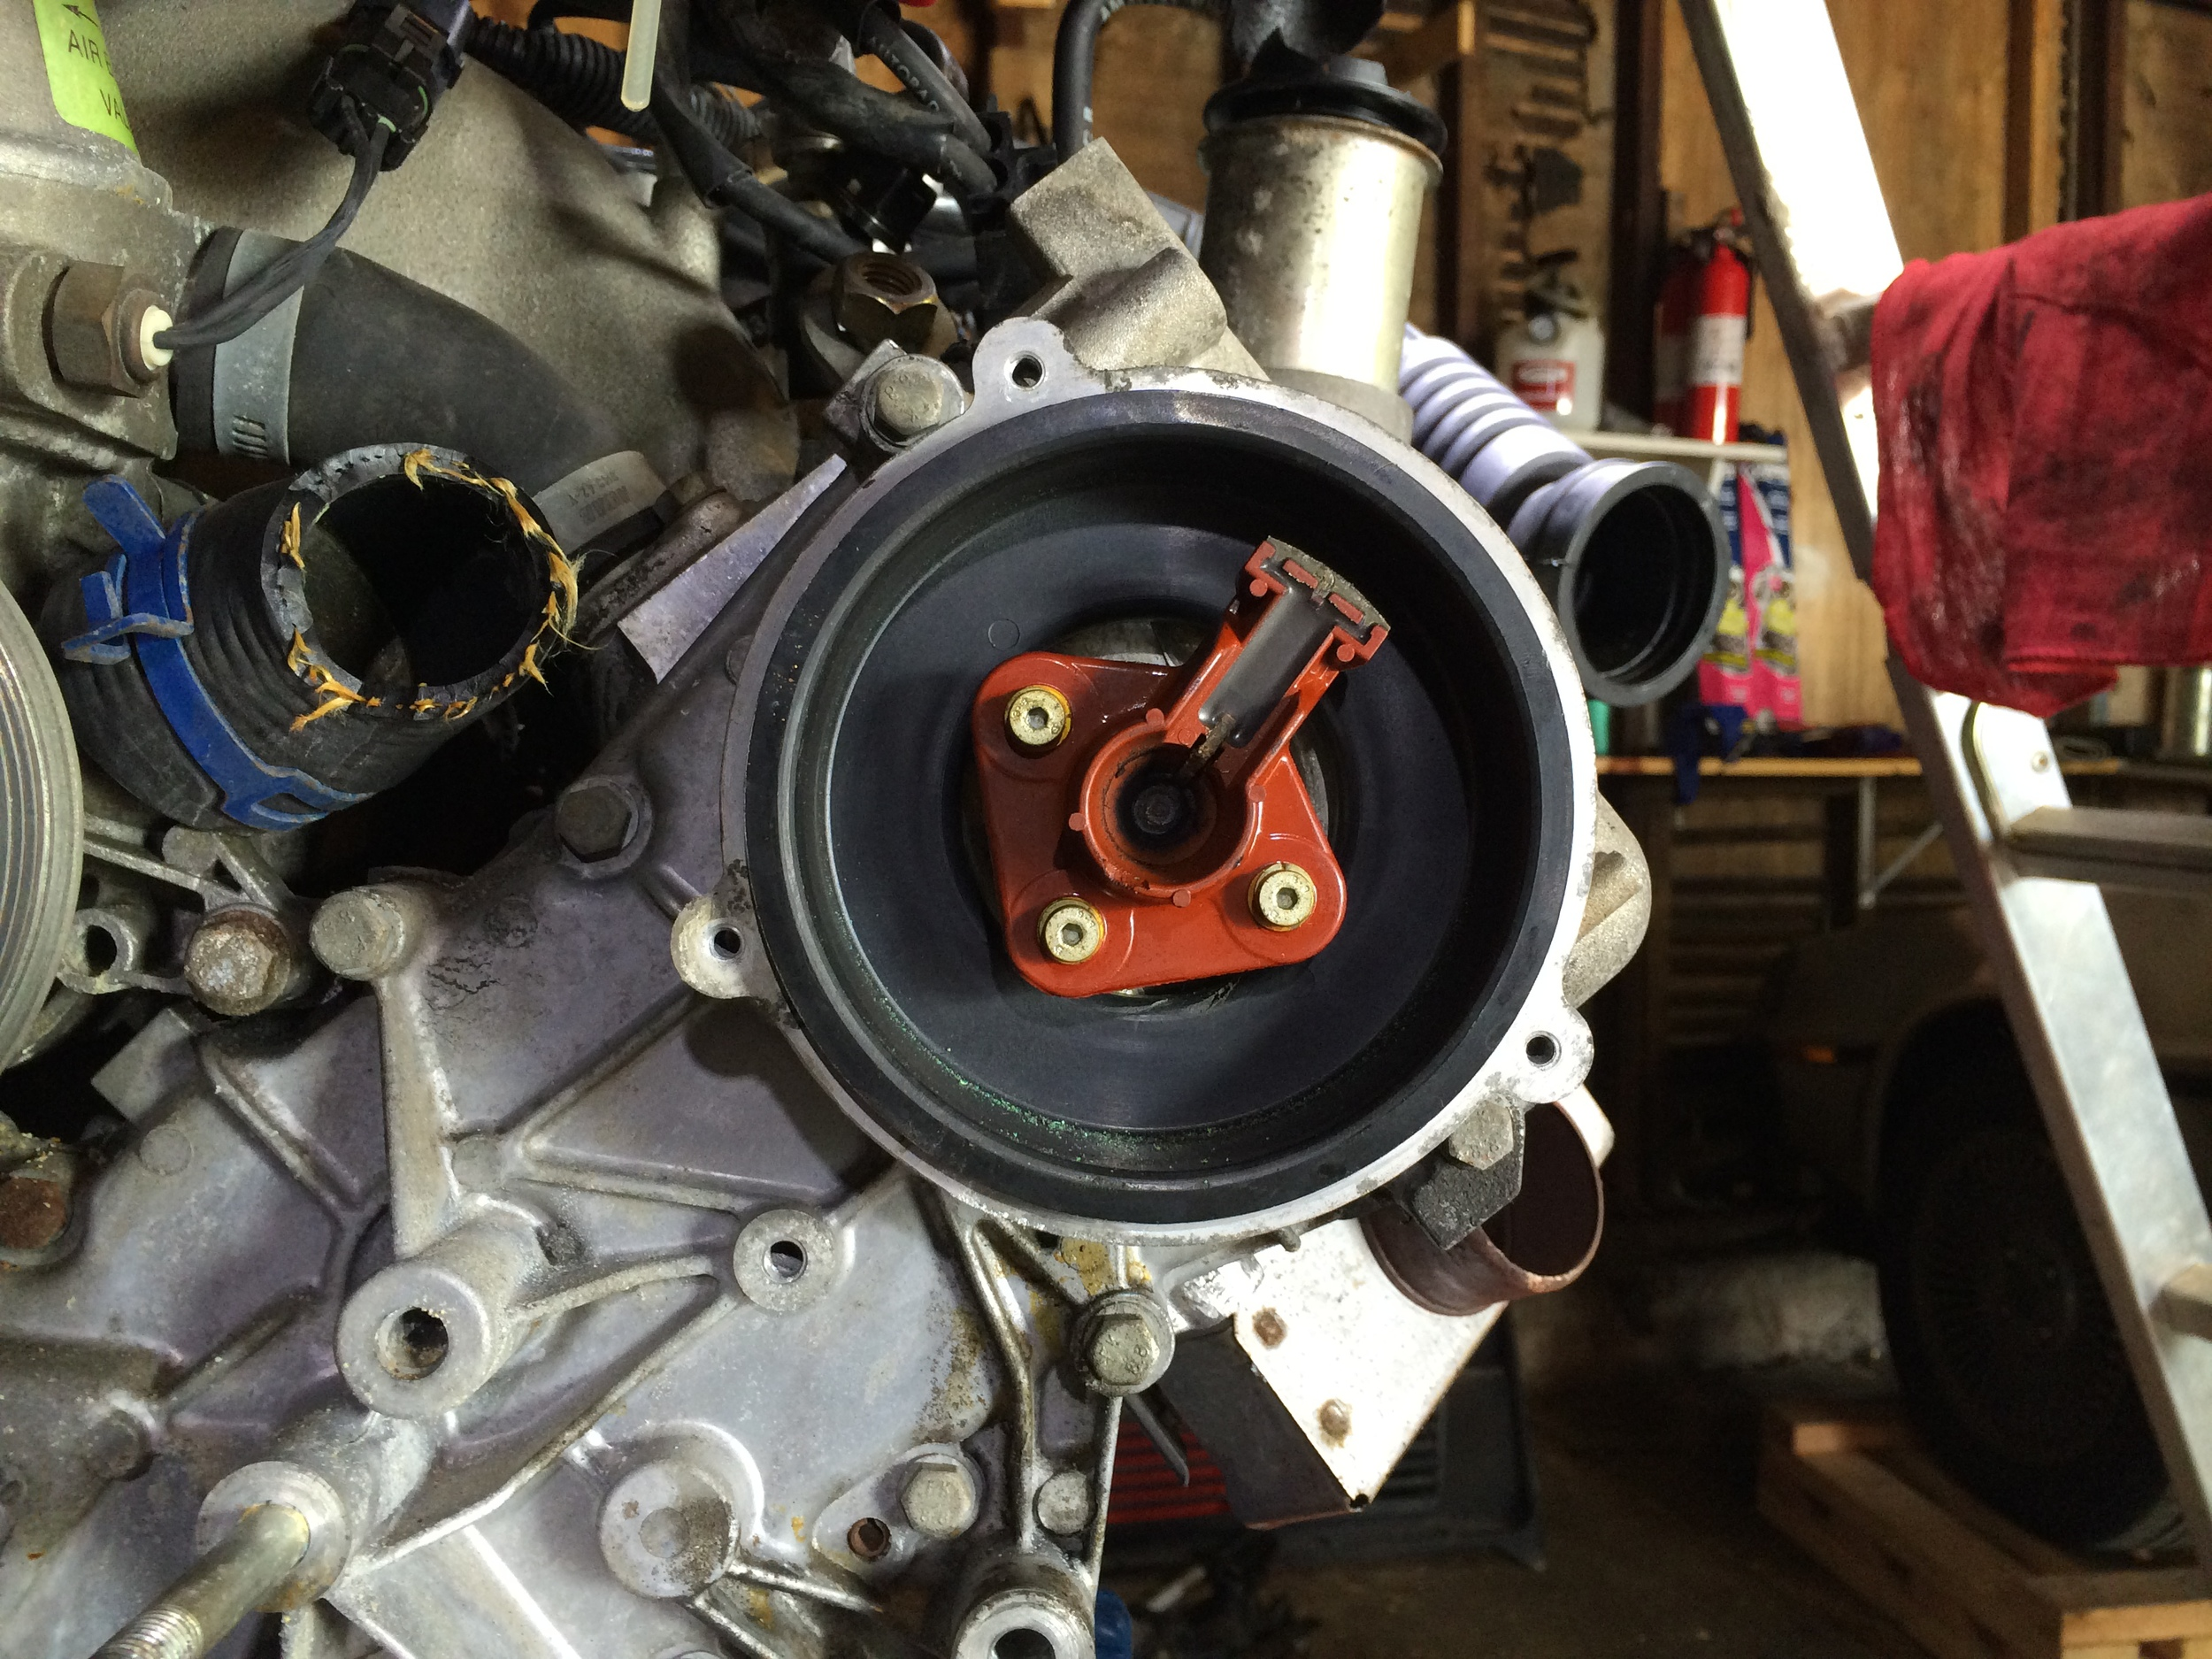 The distributor cap removed, revealing the rotor.